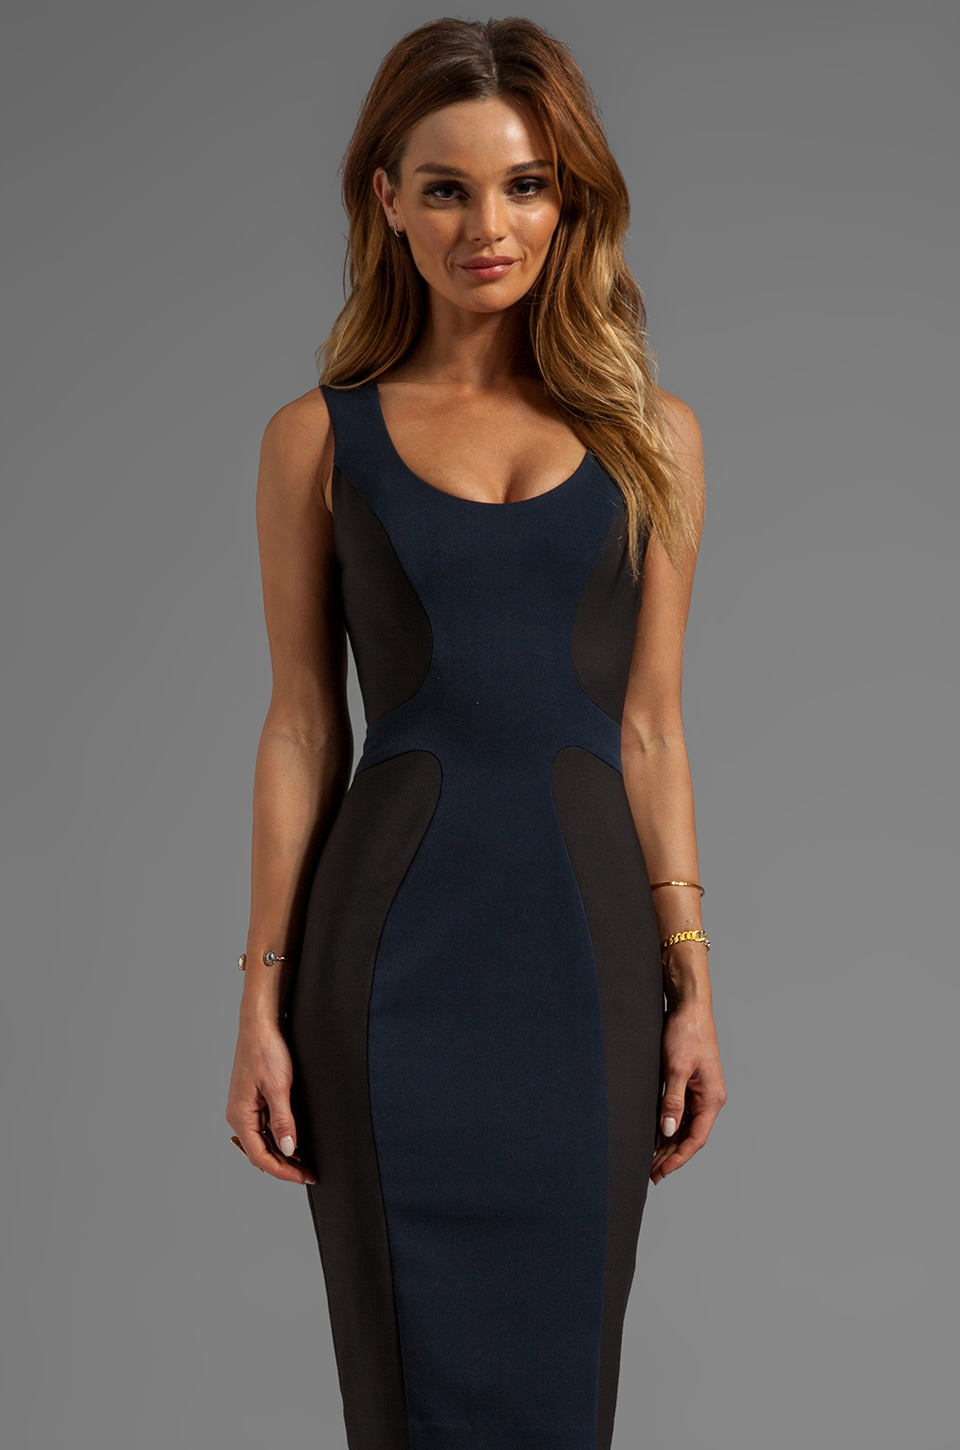 Black Halo Annabelle Dress in Blueberry/Black